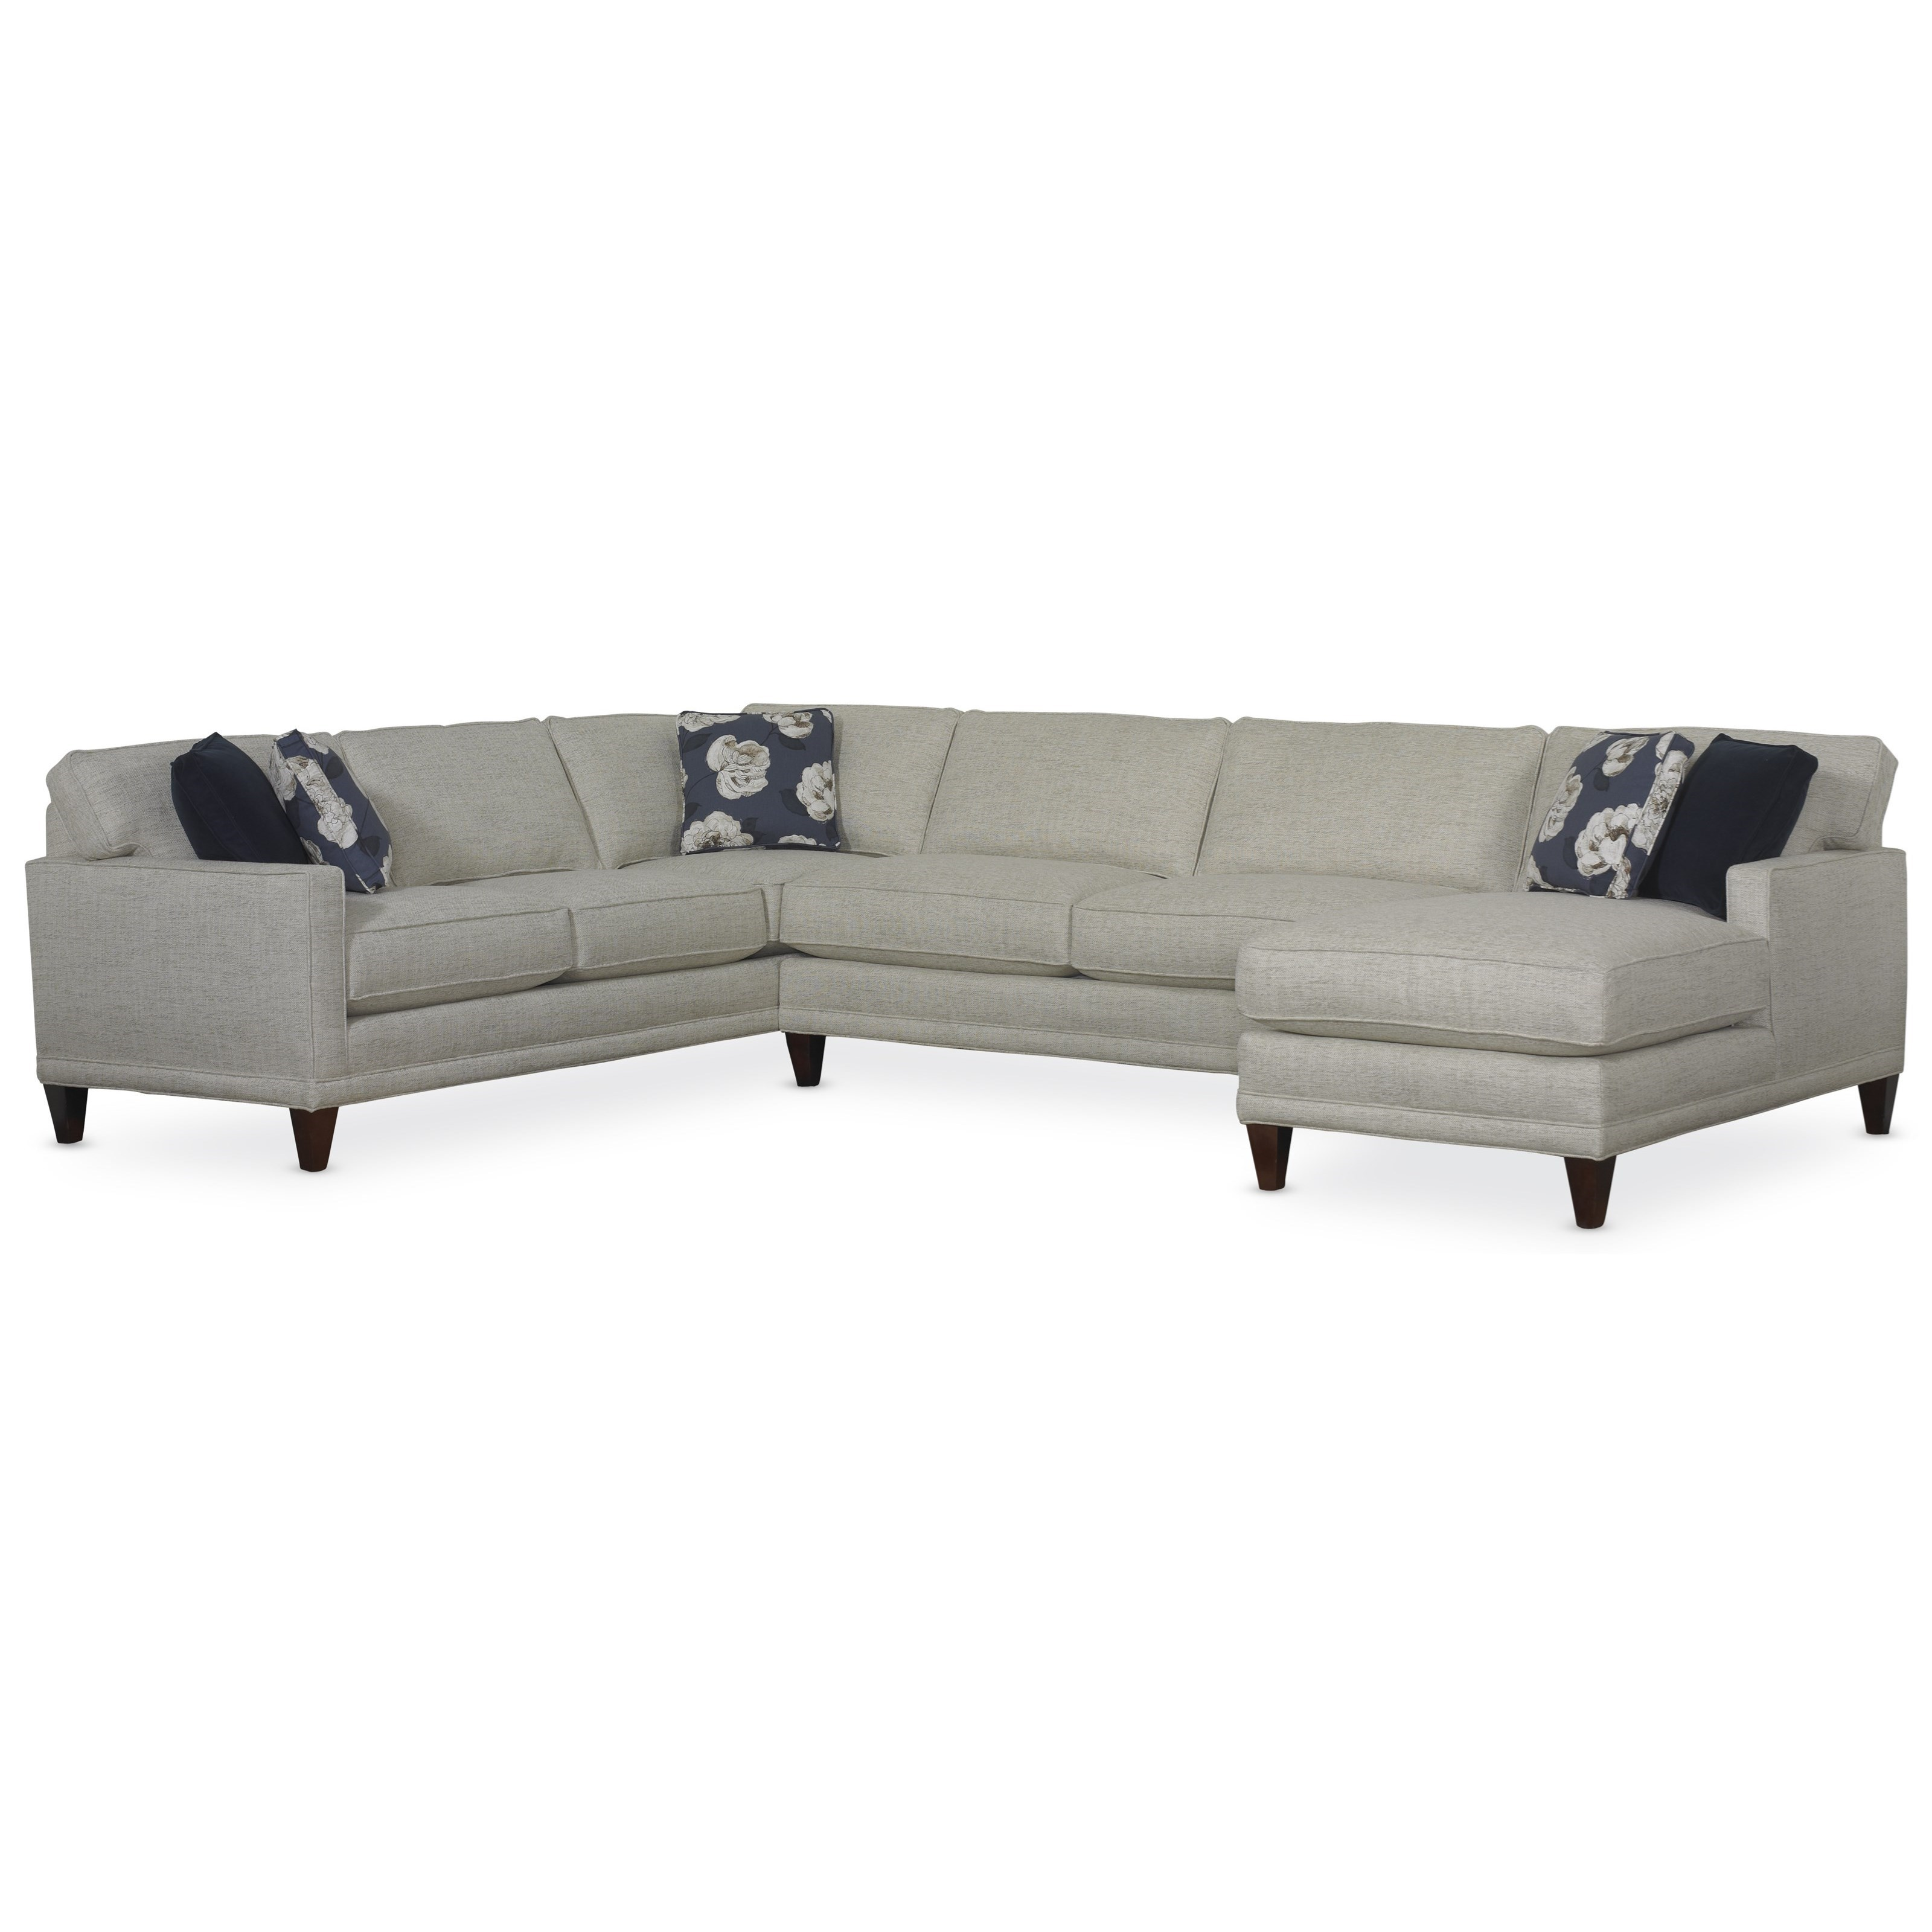 Rowe Townsend Casual Sectional Sofa Group - Hudsonu0027s Furniture - Sectional Sofas  sc 1 st  Hudsonu0027s Furniture : laramie sectional - Sectionals, Sofas & Couches